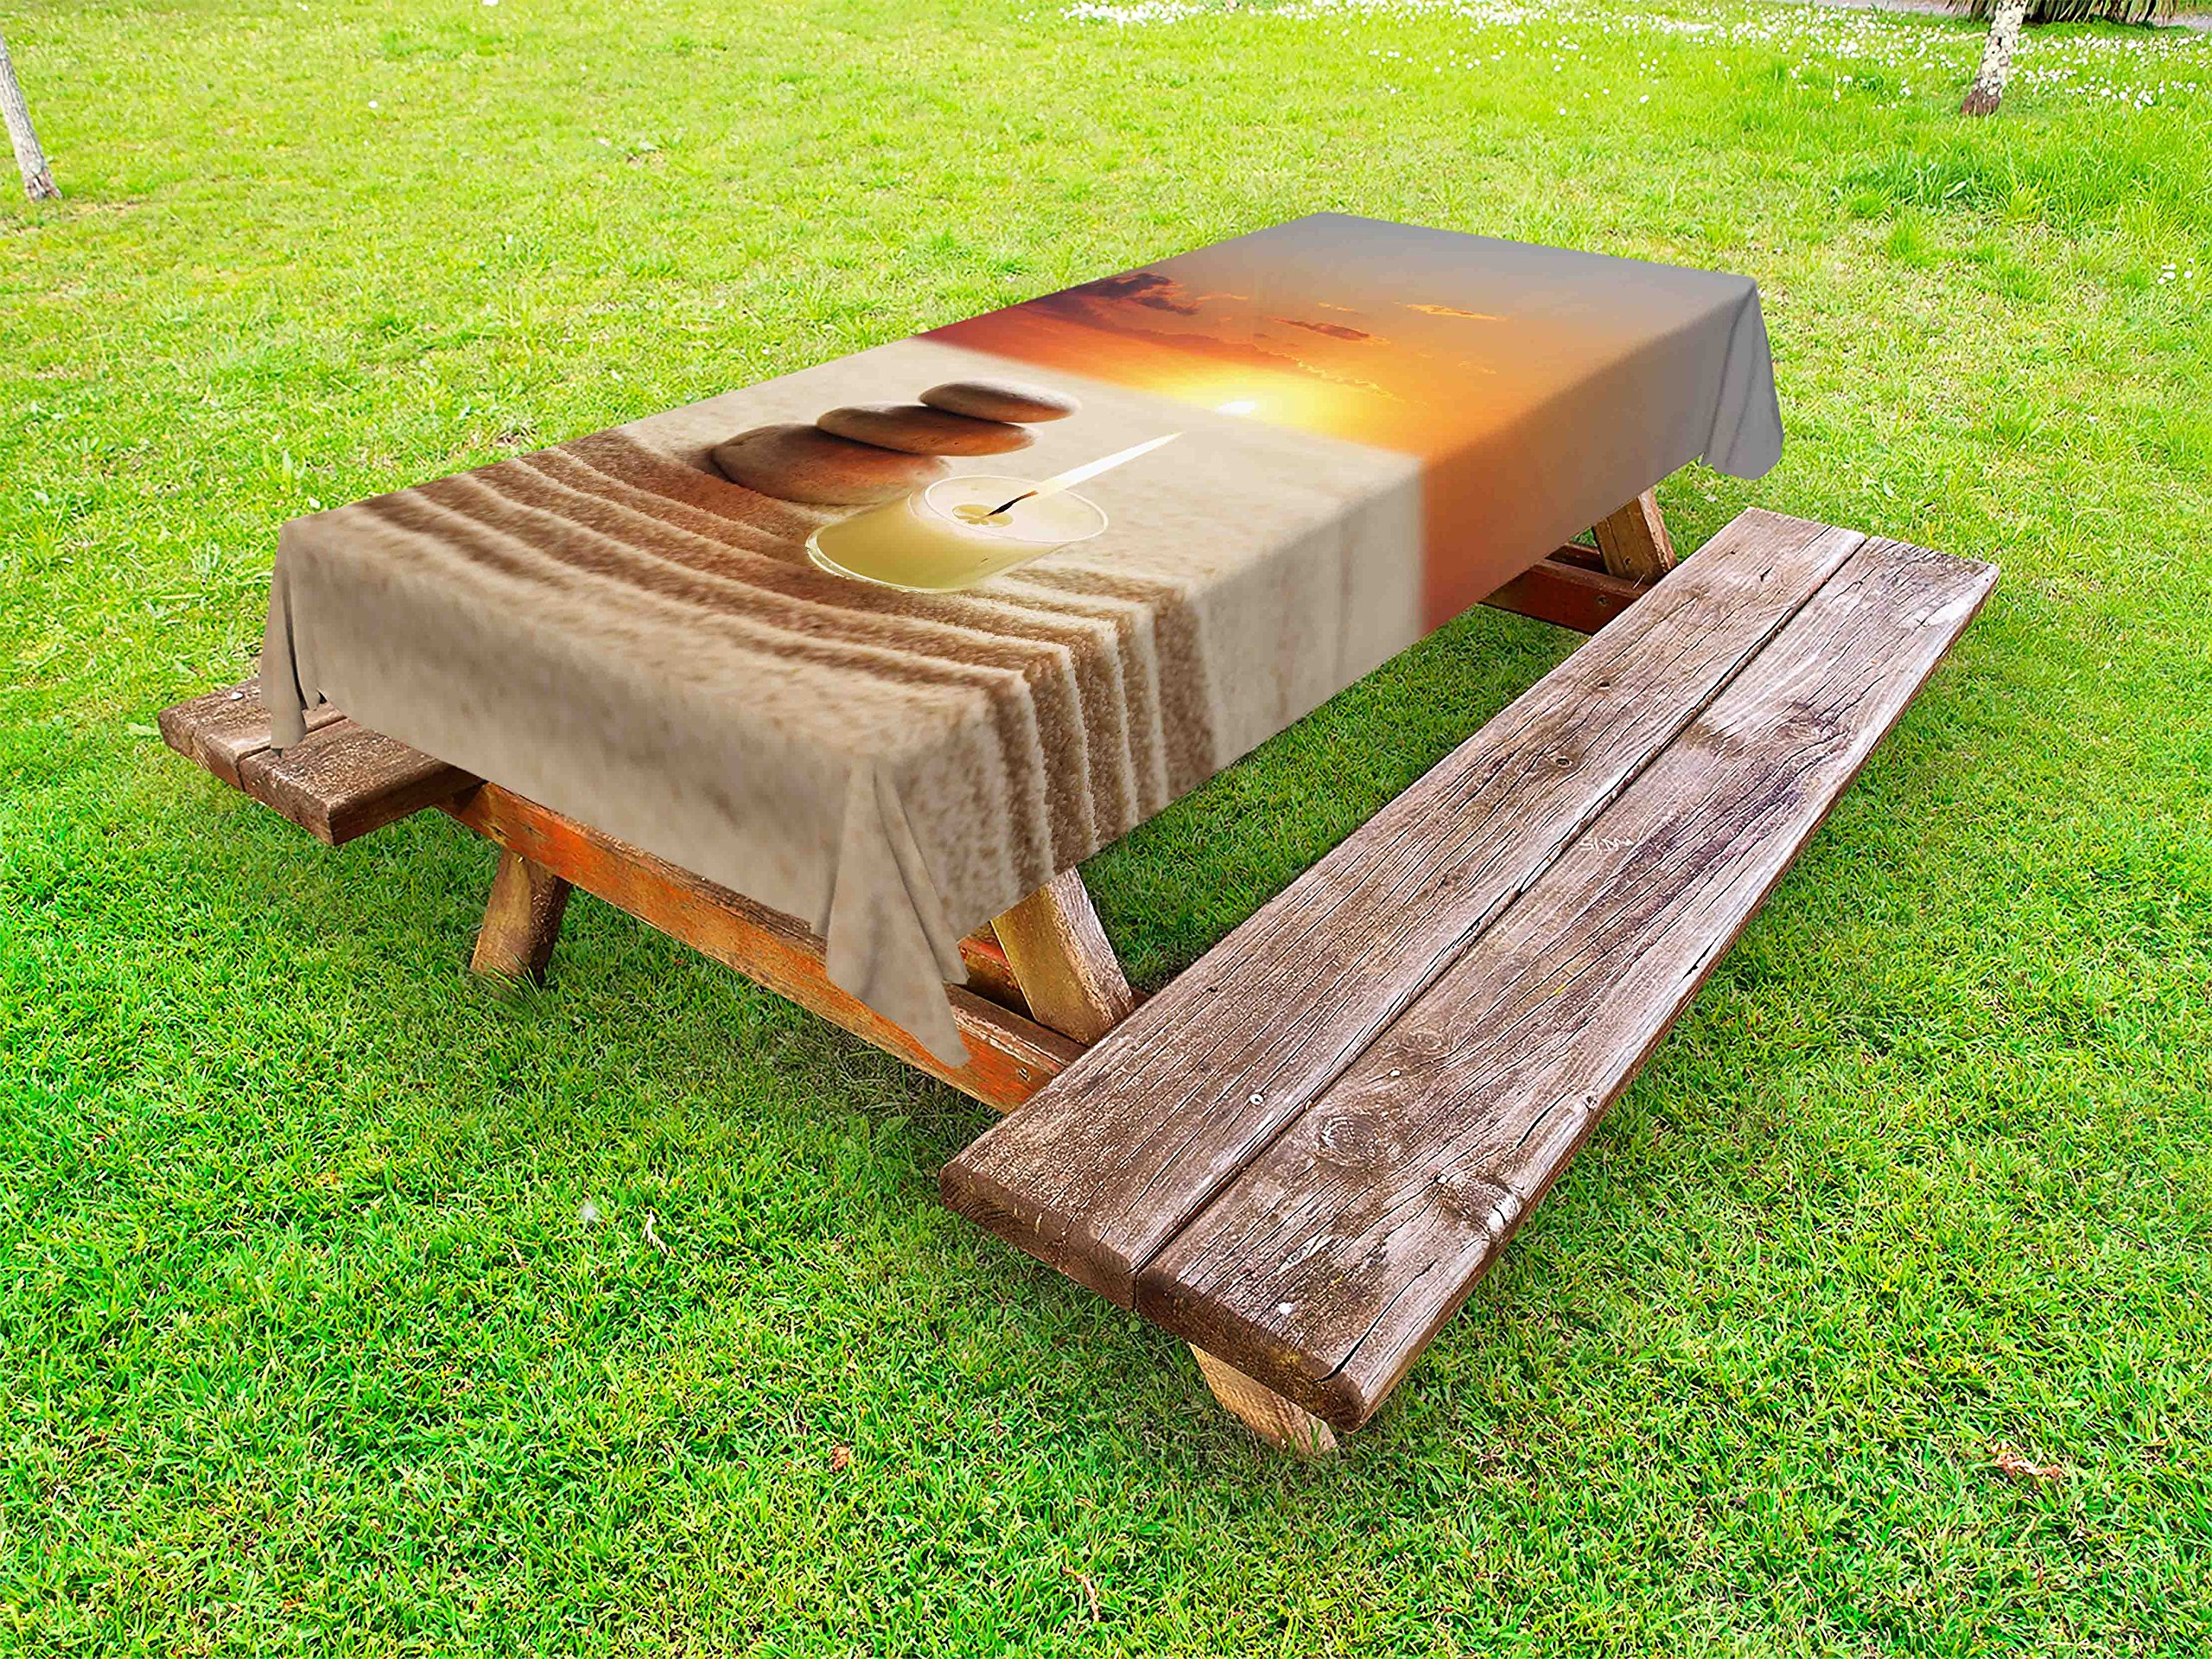 Lunarable Spa Outdoor Tablecloth, Little Candle with Three Stones Middle of Sand with Sunset Serene Landscape, Decorative Washable Picnic Table Cloth, 58 X 84 inches, White Brown and Orange